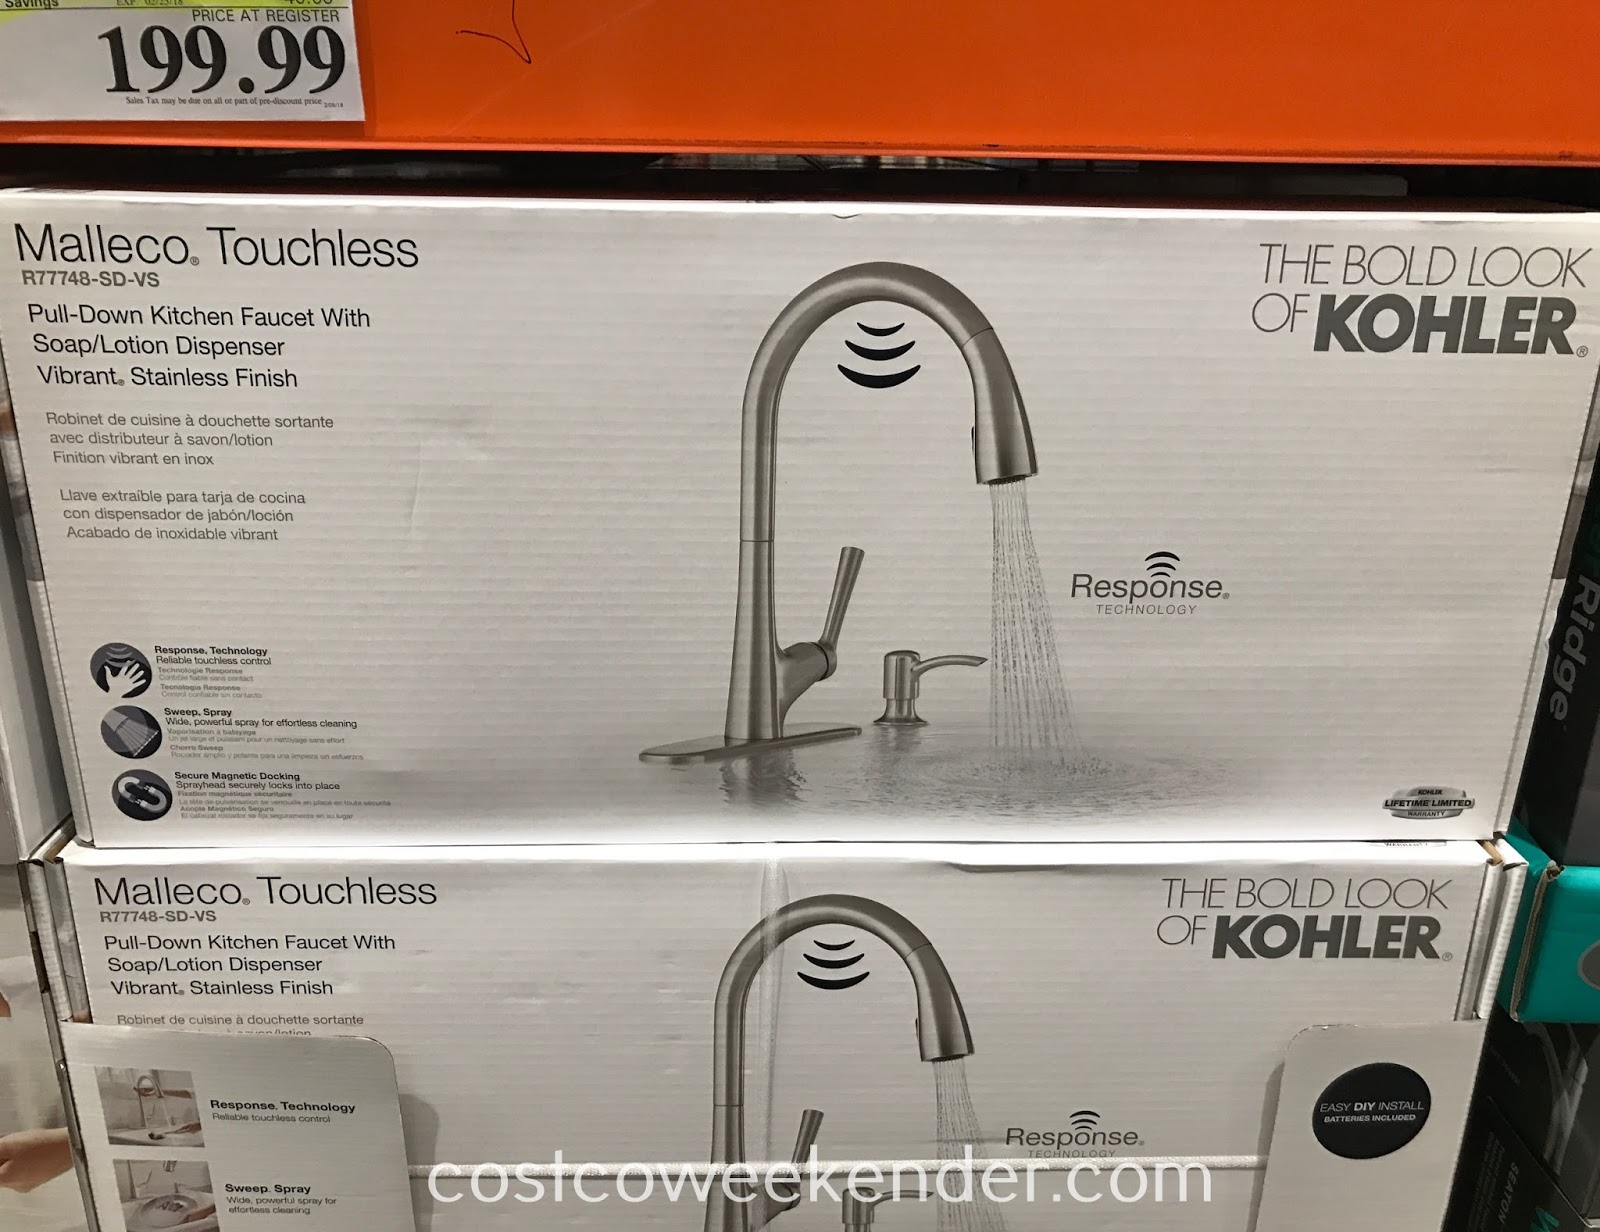 Kohler Malleco Touchless Pull Down Kitchen Faucet